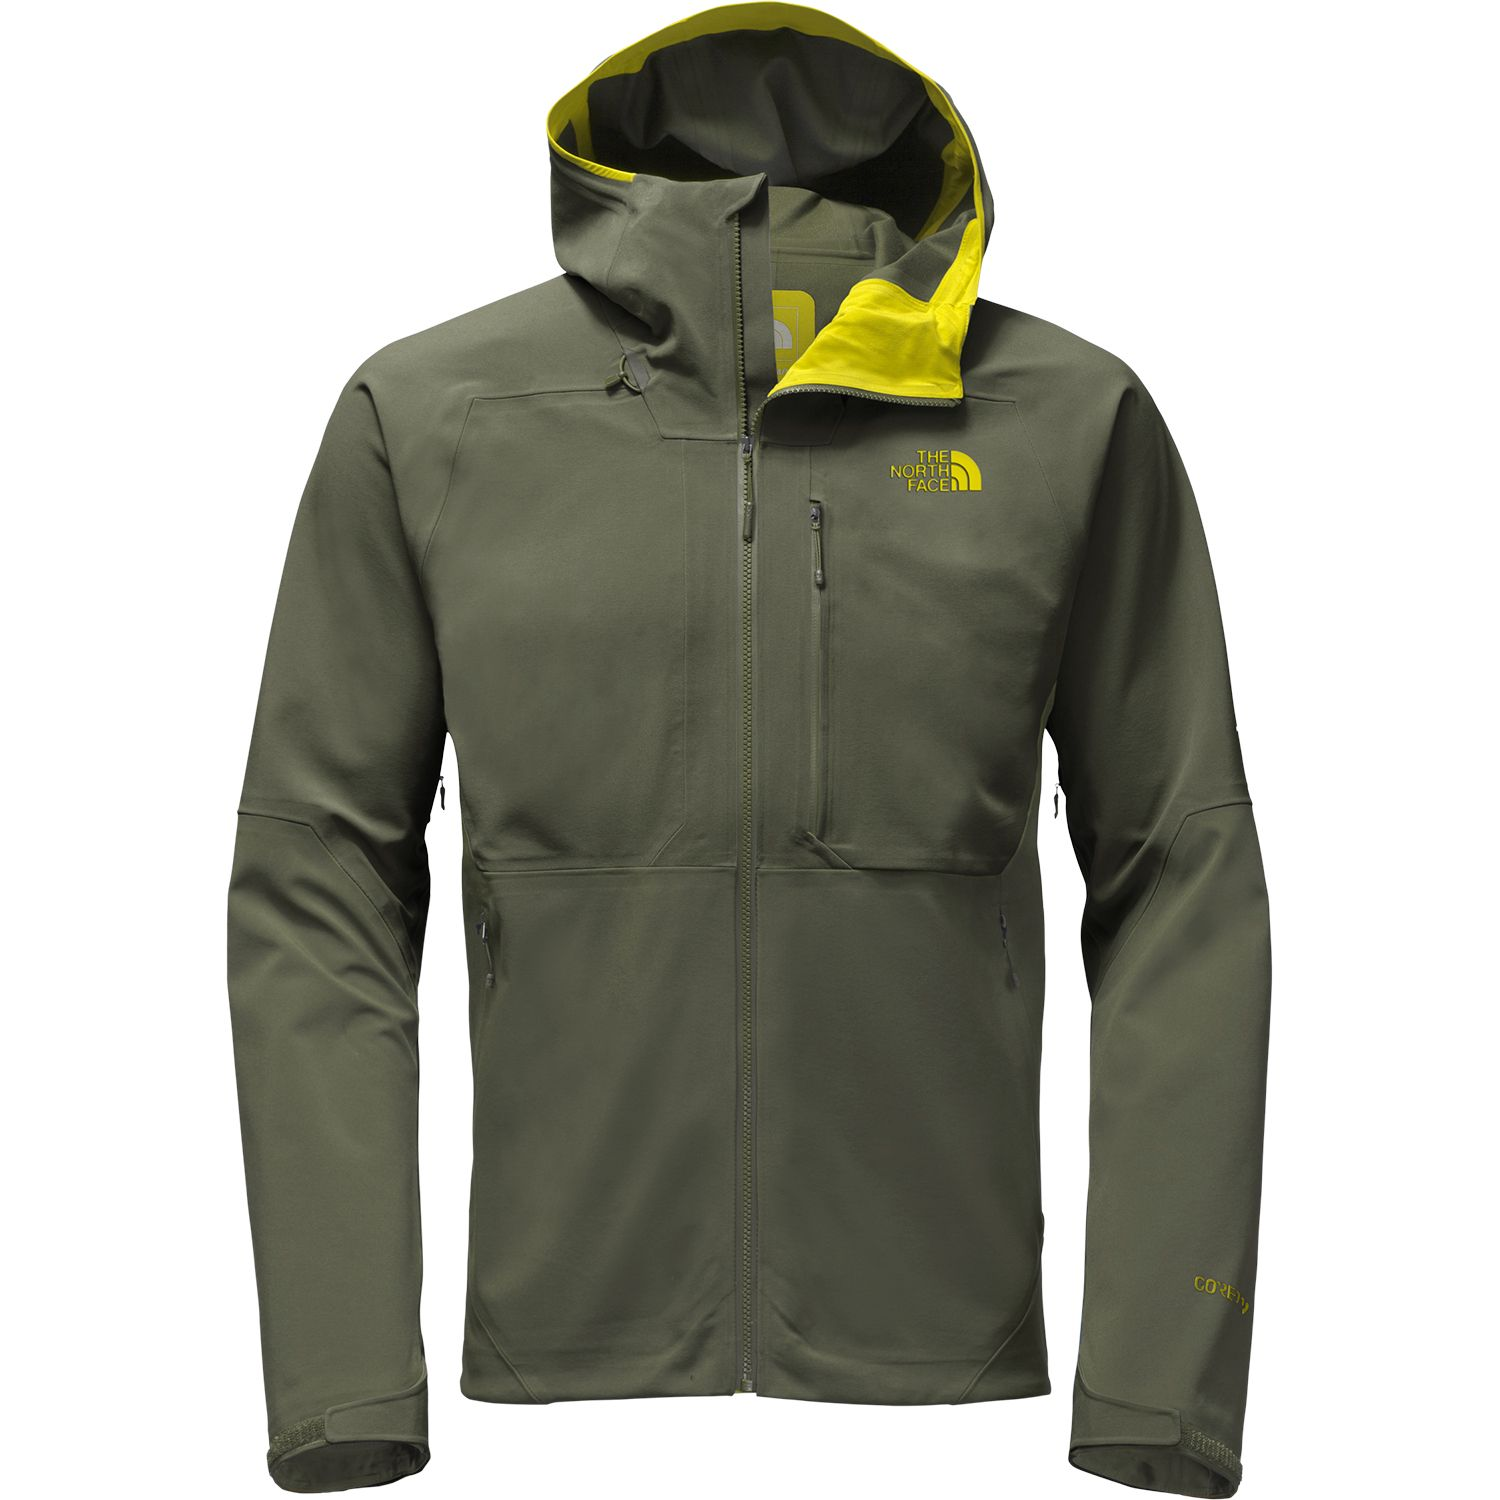 a4f585ea2 The North Face Apex Flex GTX 2.0 Jacket - Men's